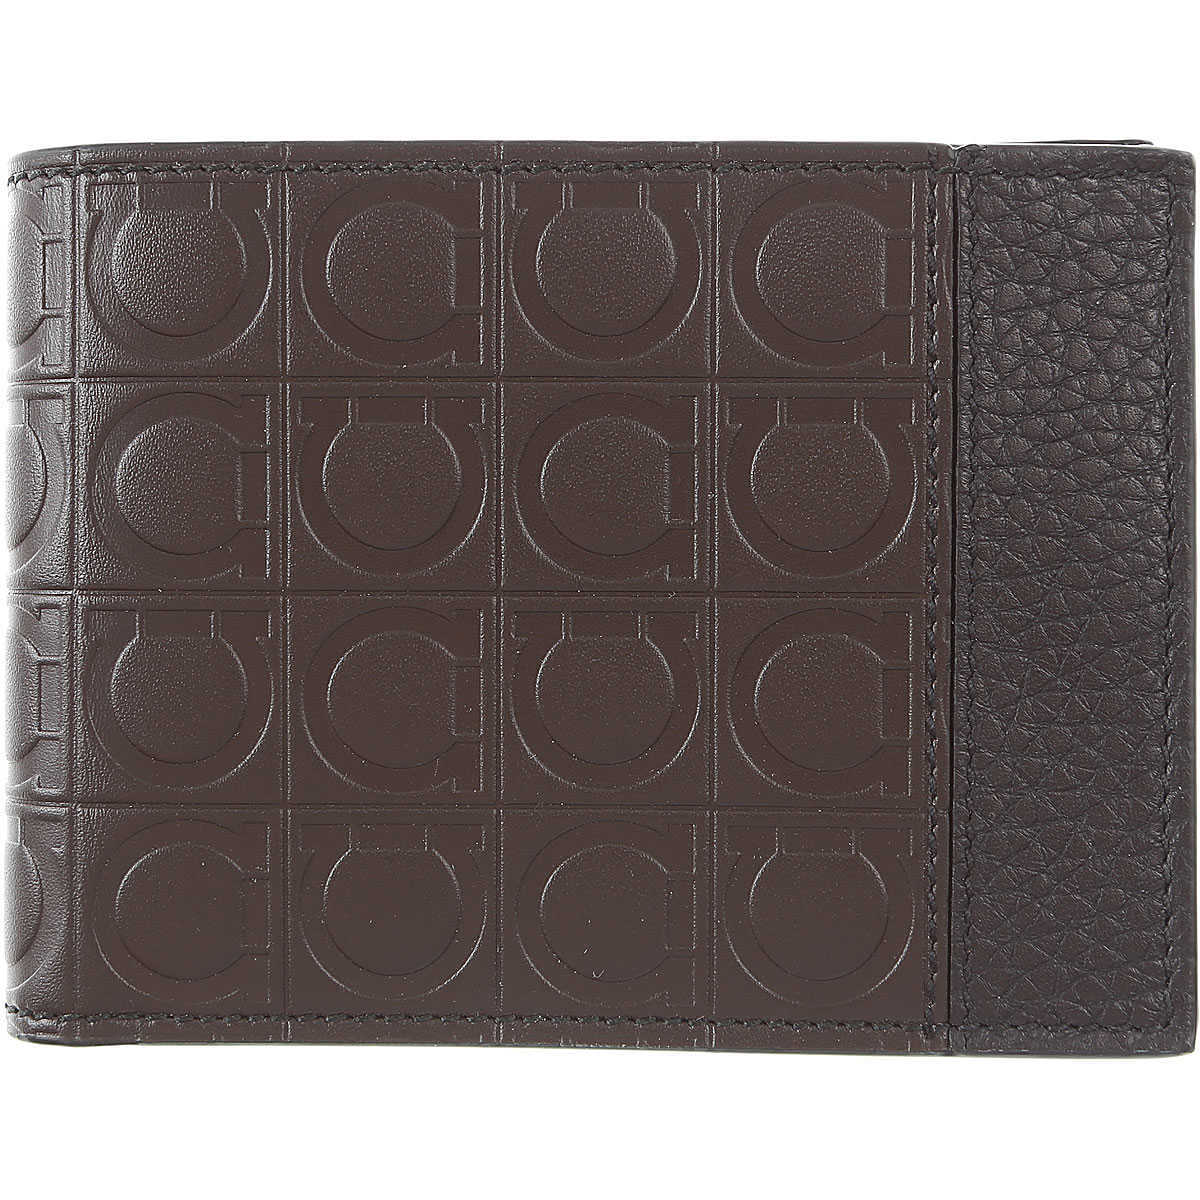 Salvatore Ferragamo Wallet for Men On Sale Brown - GOOFASH